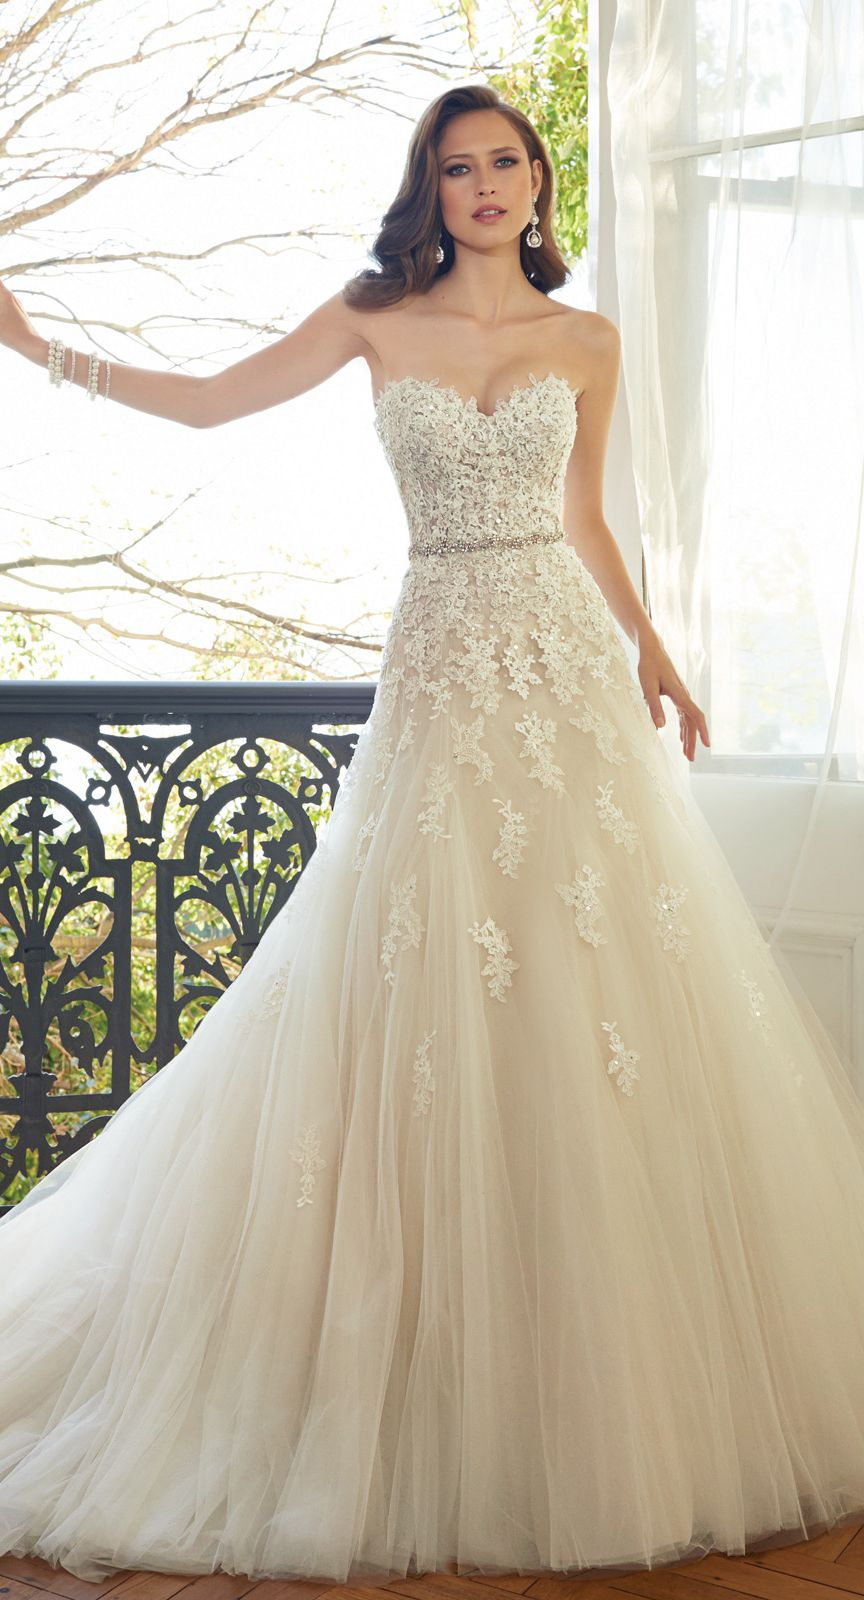 Best type of dress to wear to a wedding  Sophia Tolli  My Big Day  Pinterest  Wedding dress Wedding and